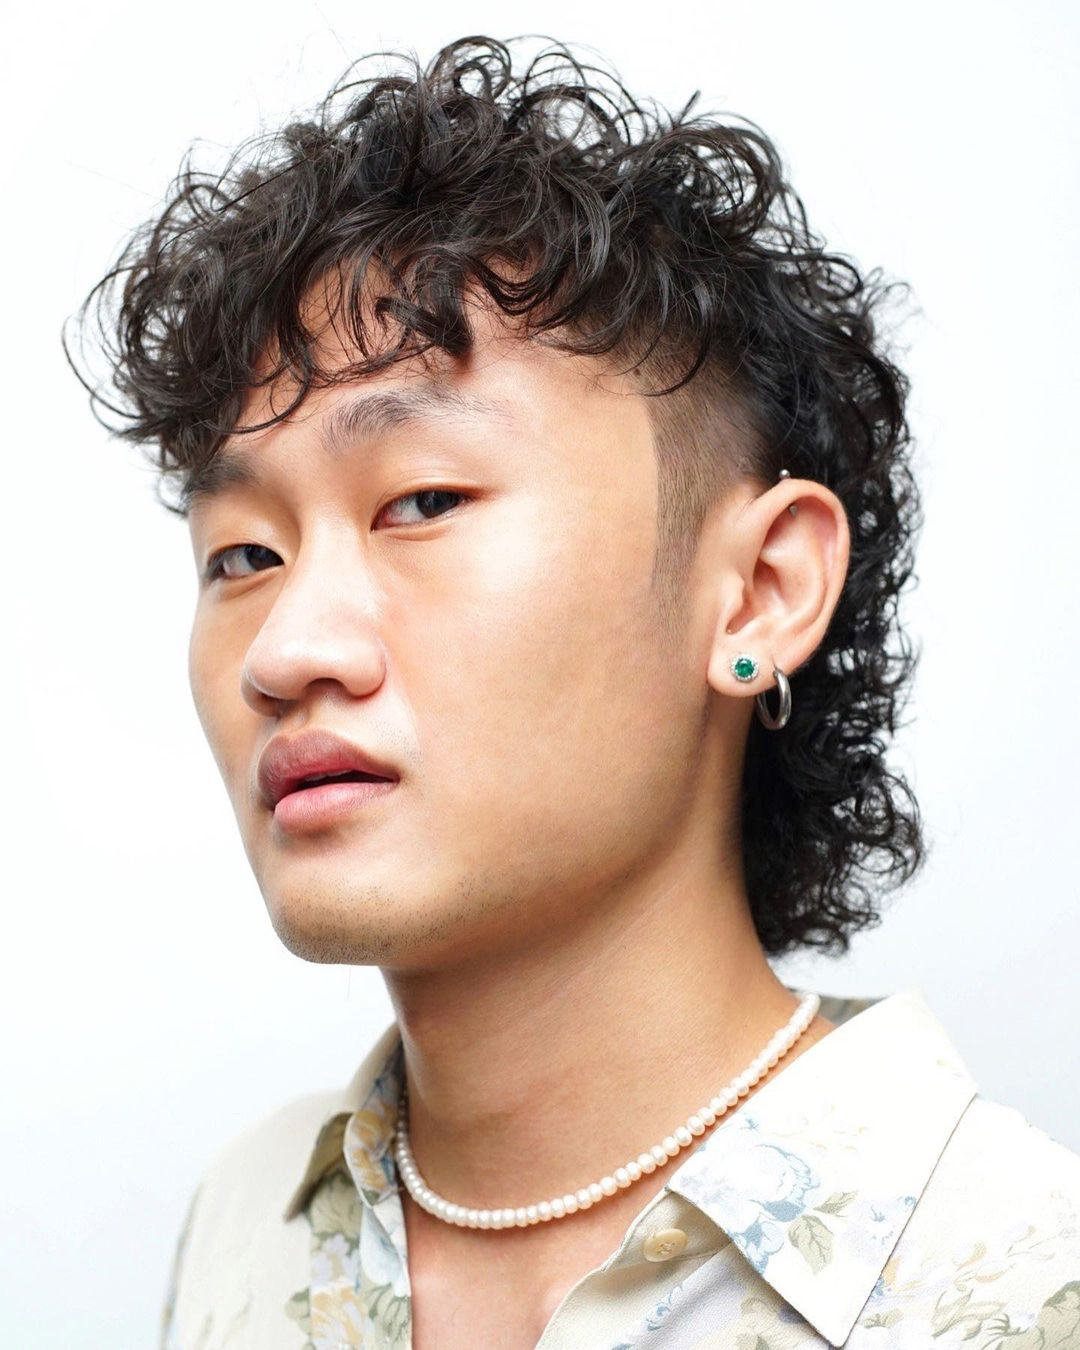 Mullet with perm